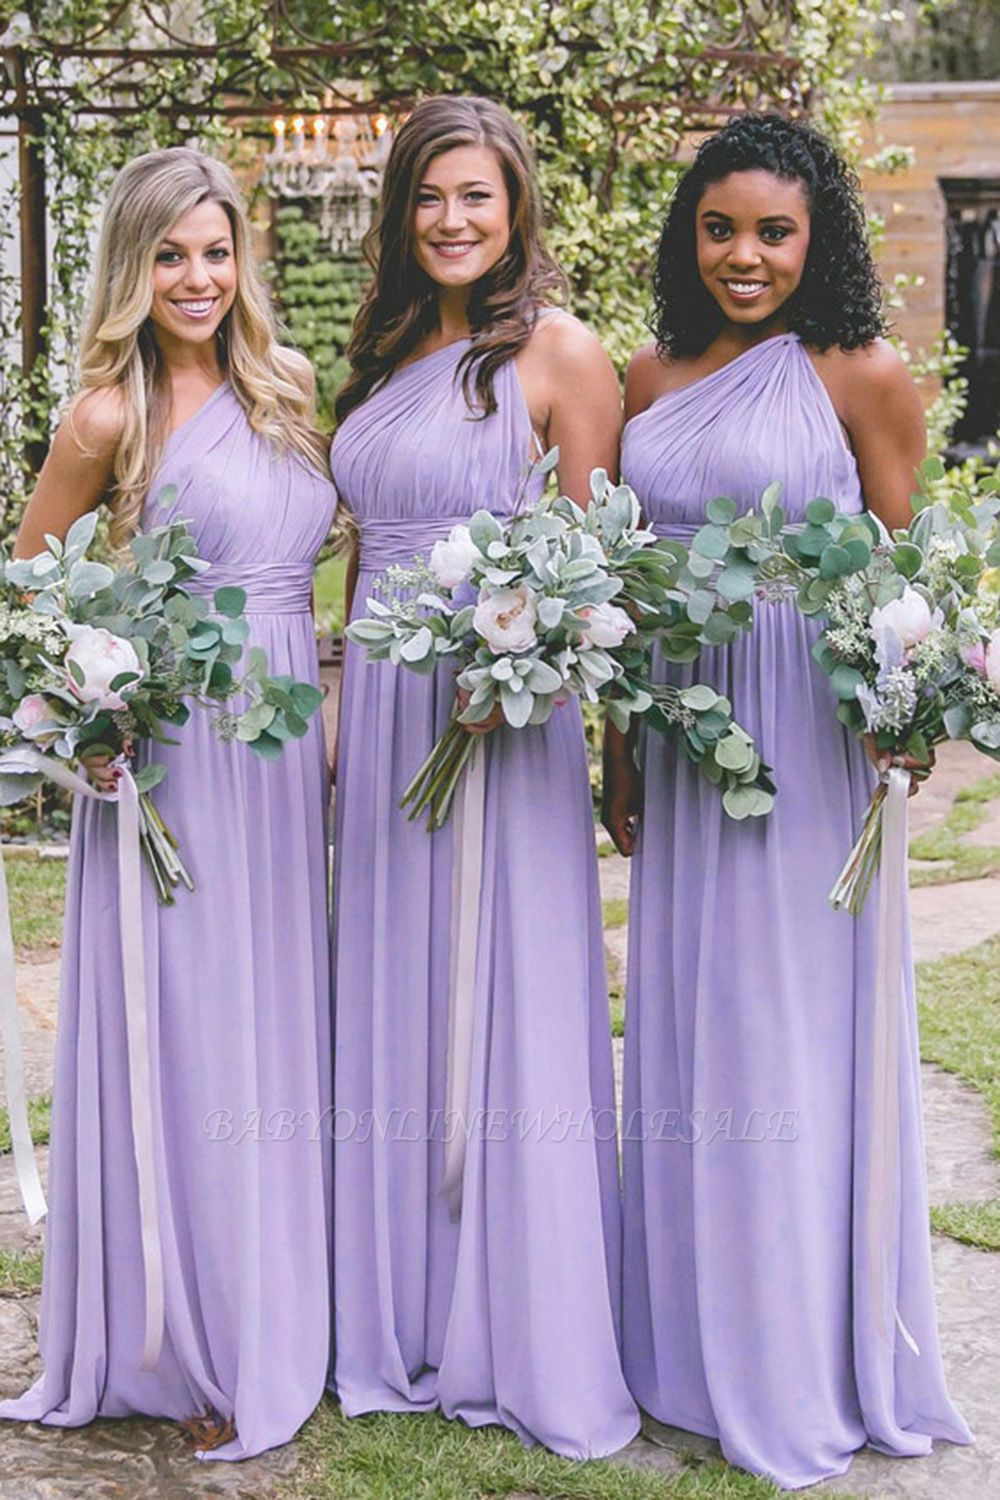 New One-Shoulder Fit Lavender Purple Floor Length Bridesmaid Dresses | Elegant Sleeveless Long Maid Of Honor Dresses